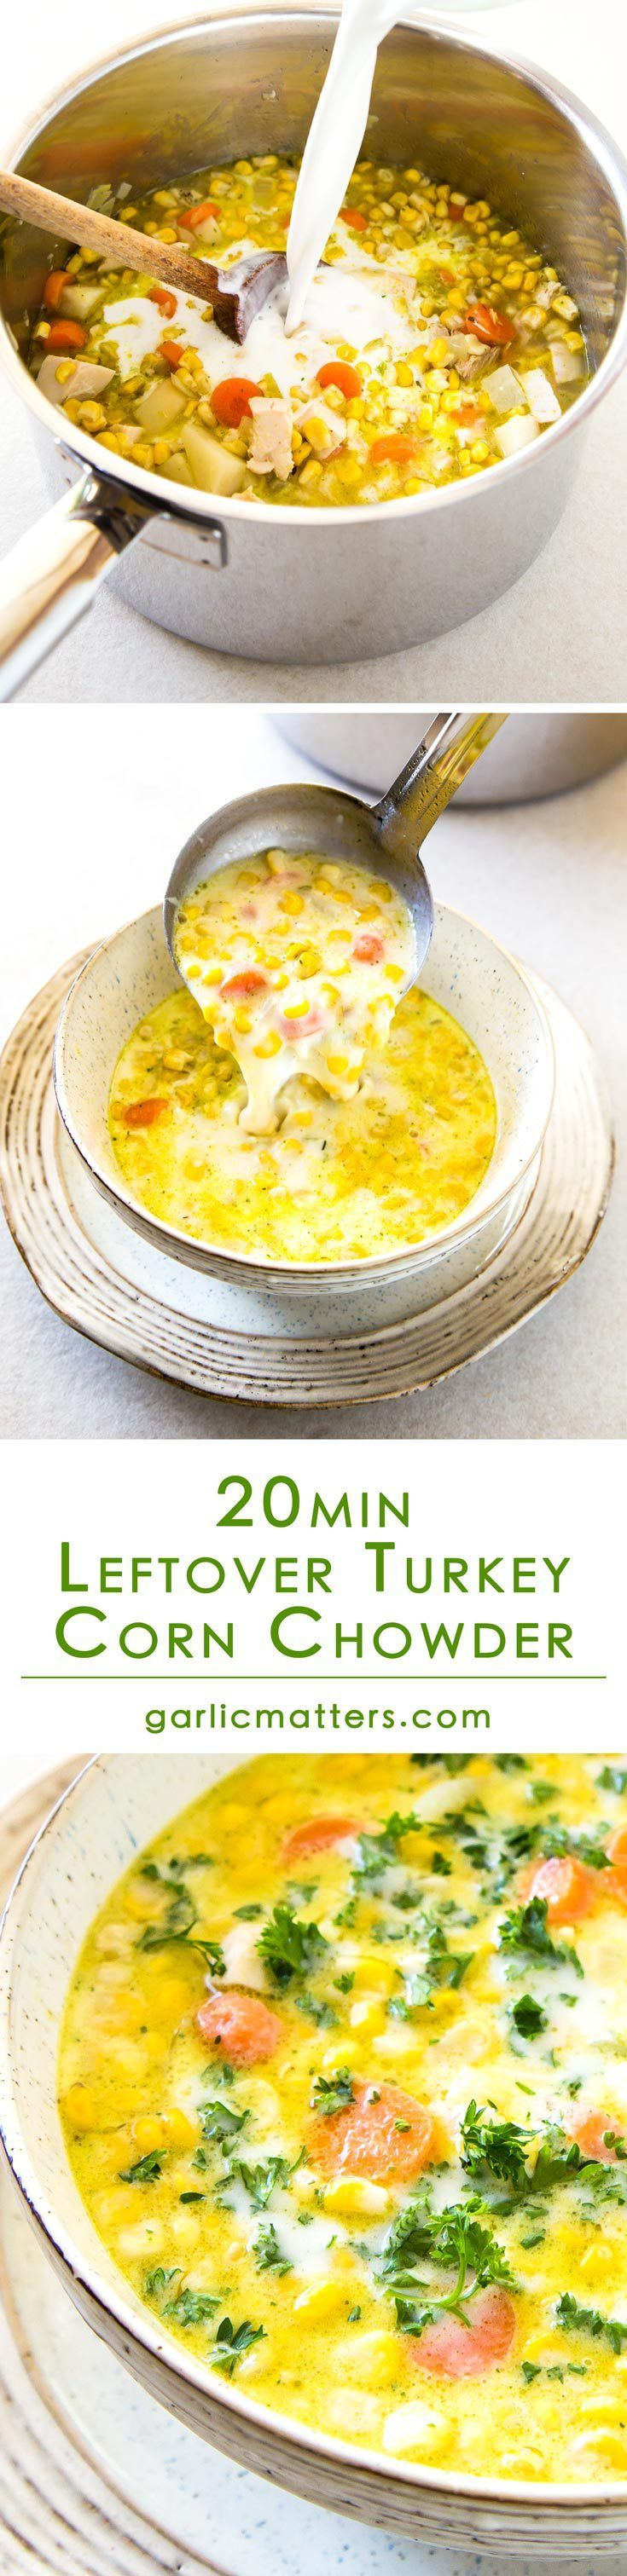 Looking for an idea on how to use leftover turkey? Try my favourite Leftover Turkey Corn Chowder! This recipe is an easy-peasy way to reinvent roast turkey leftovers into another tasty and nutritious meal. 20 minutes. 3 steps. Lunch is ready!